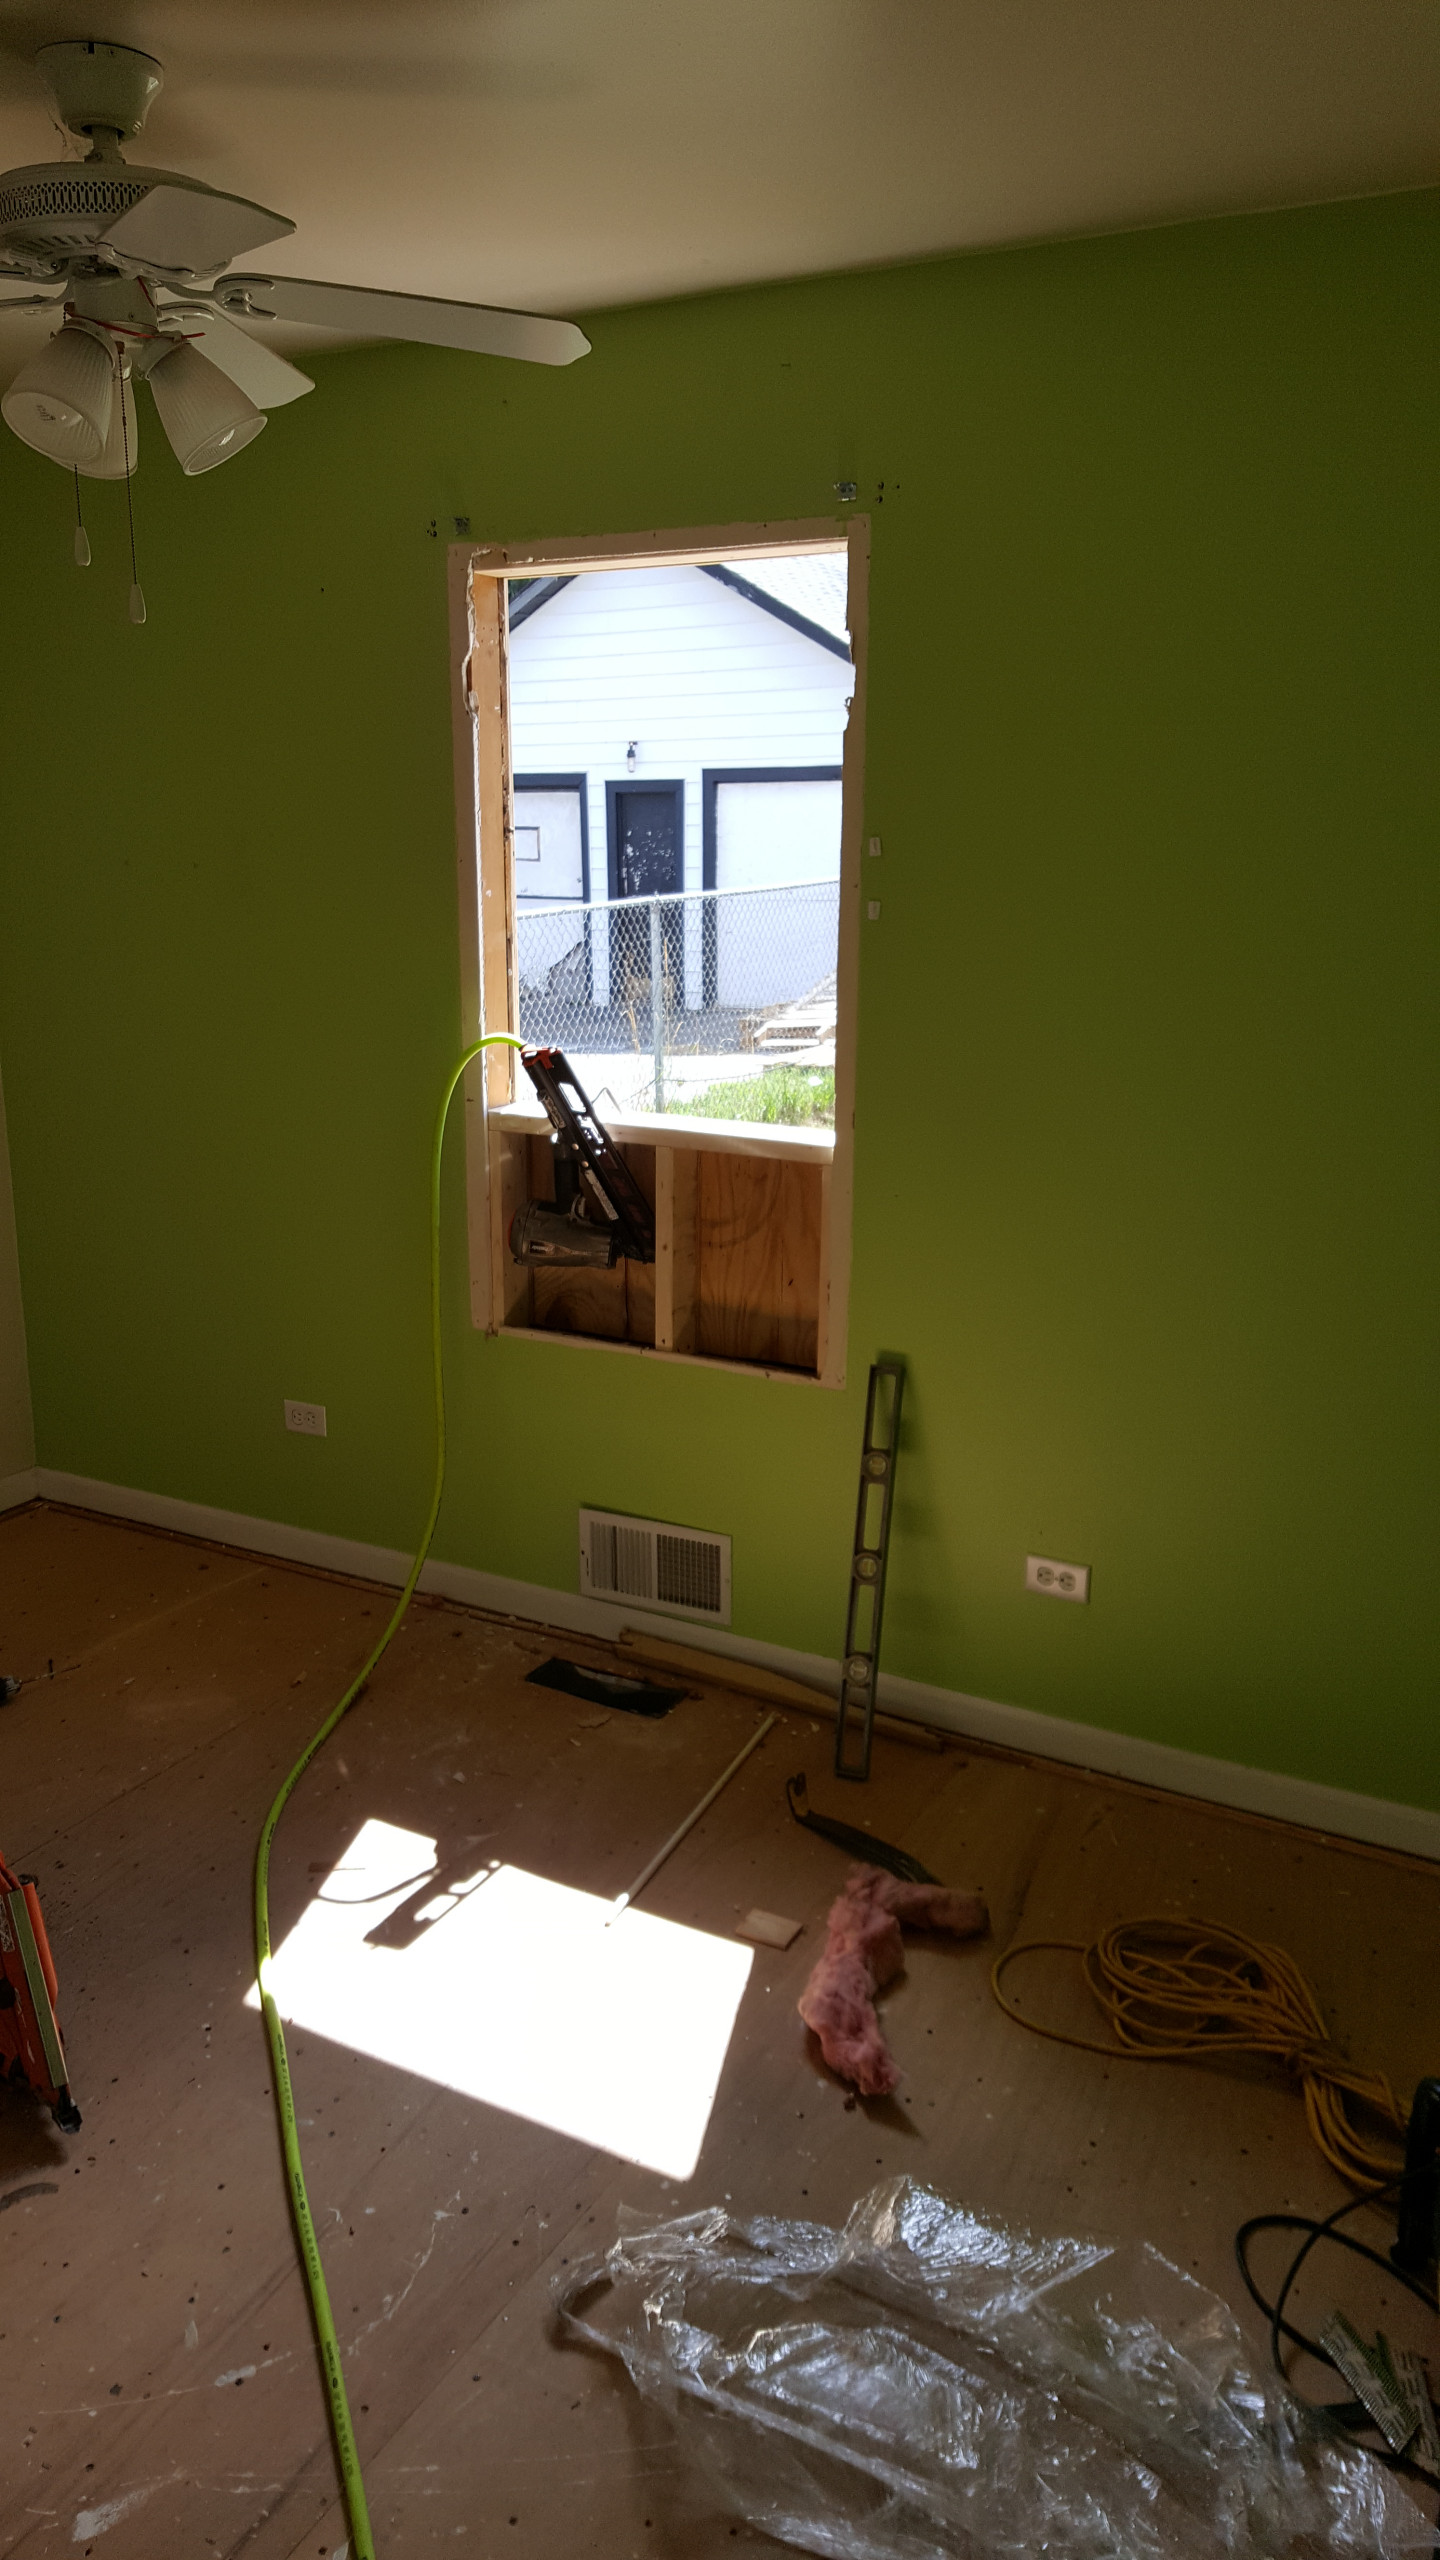 Modifying window sizes...this small bedroom will be the new laundry/utility room